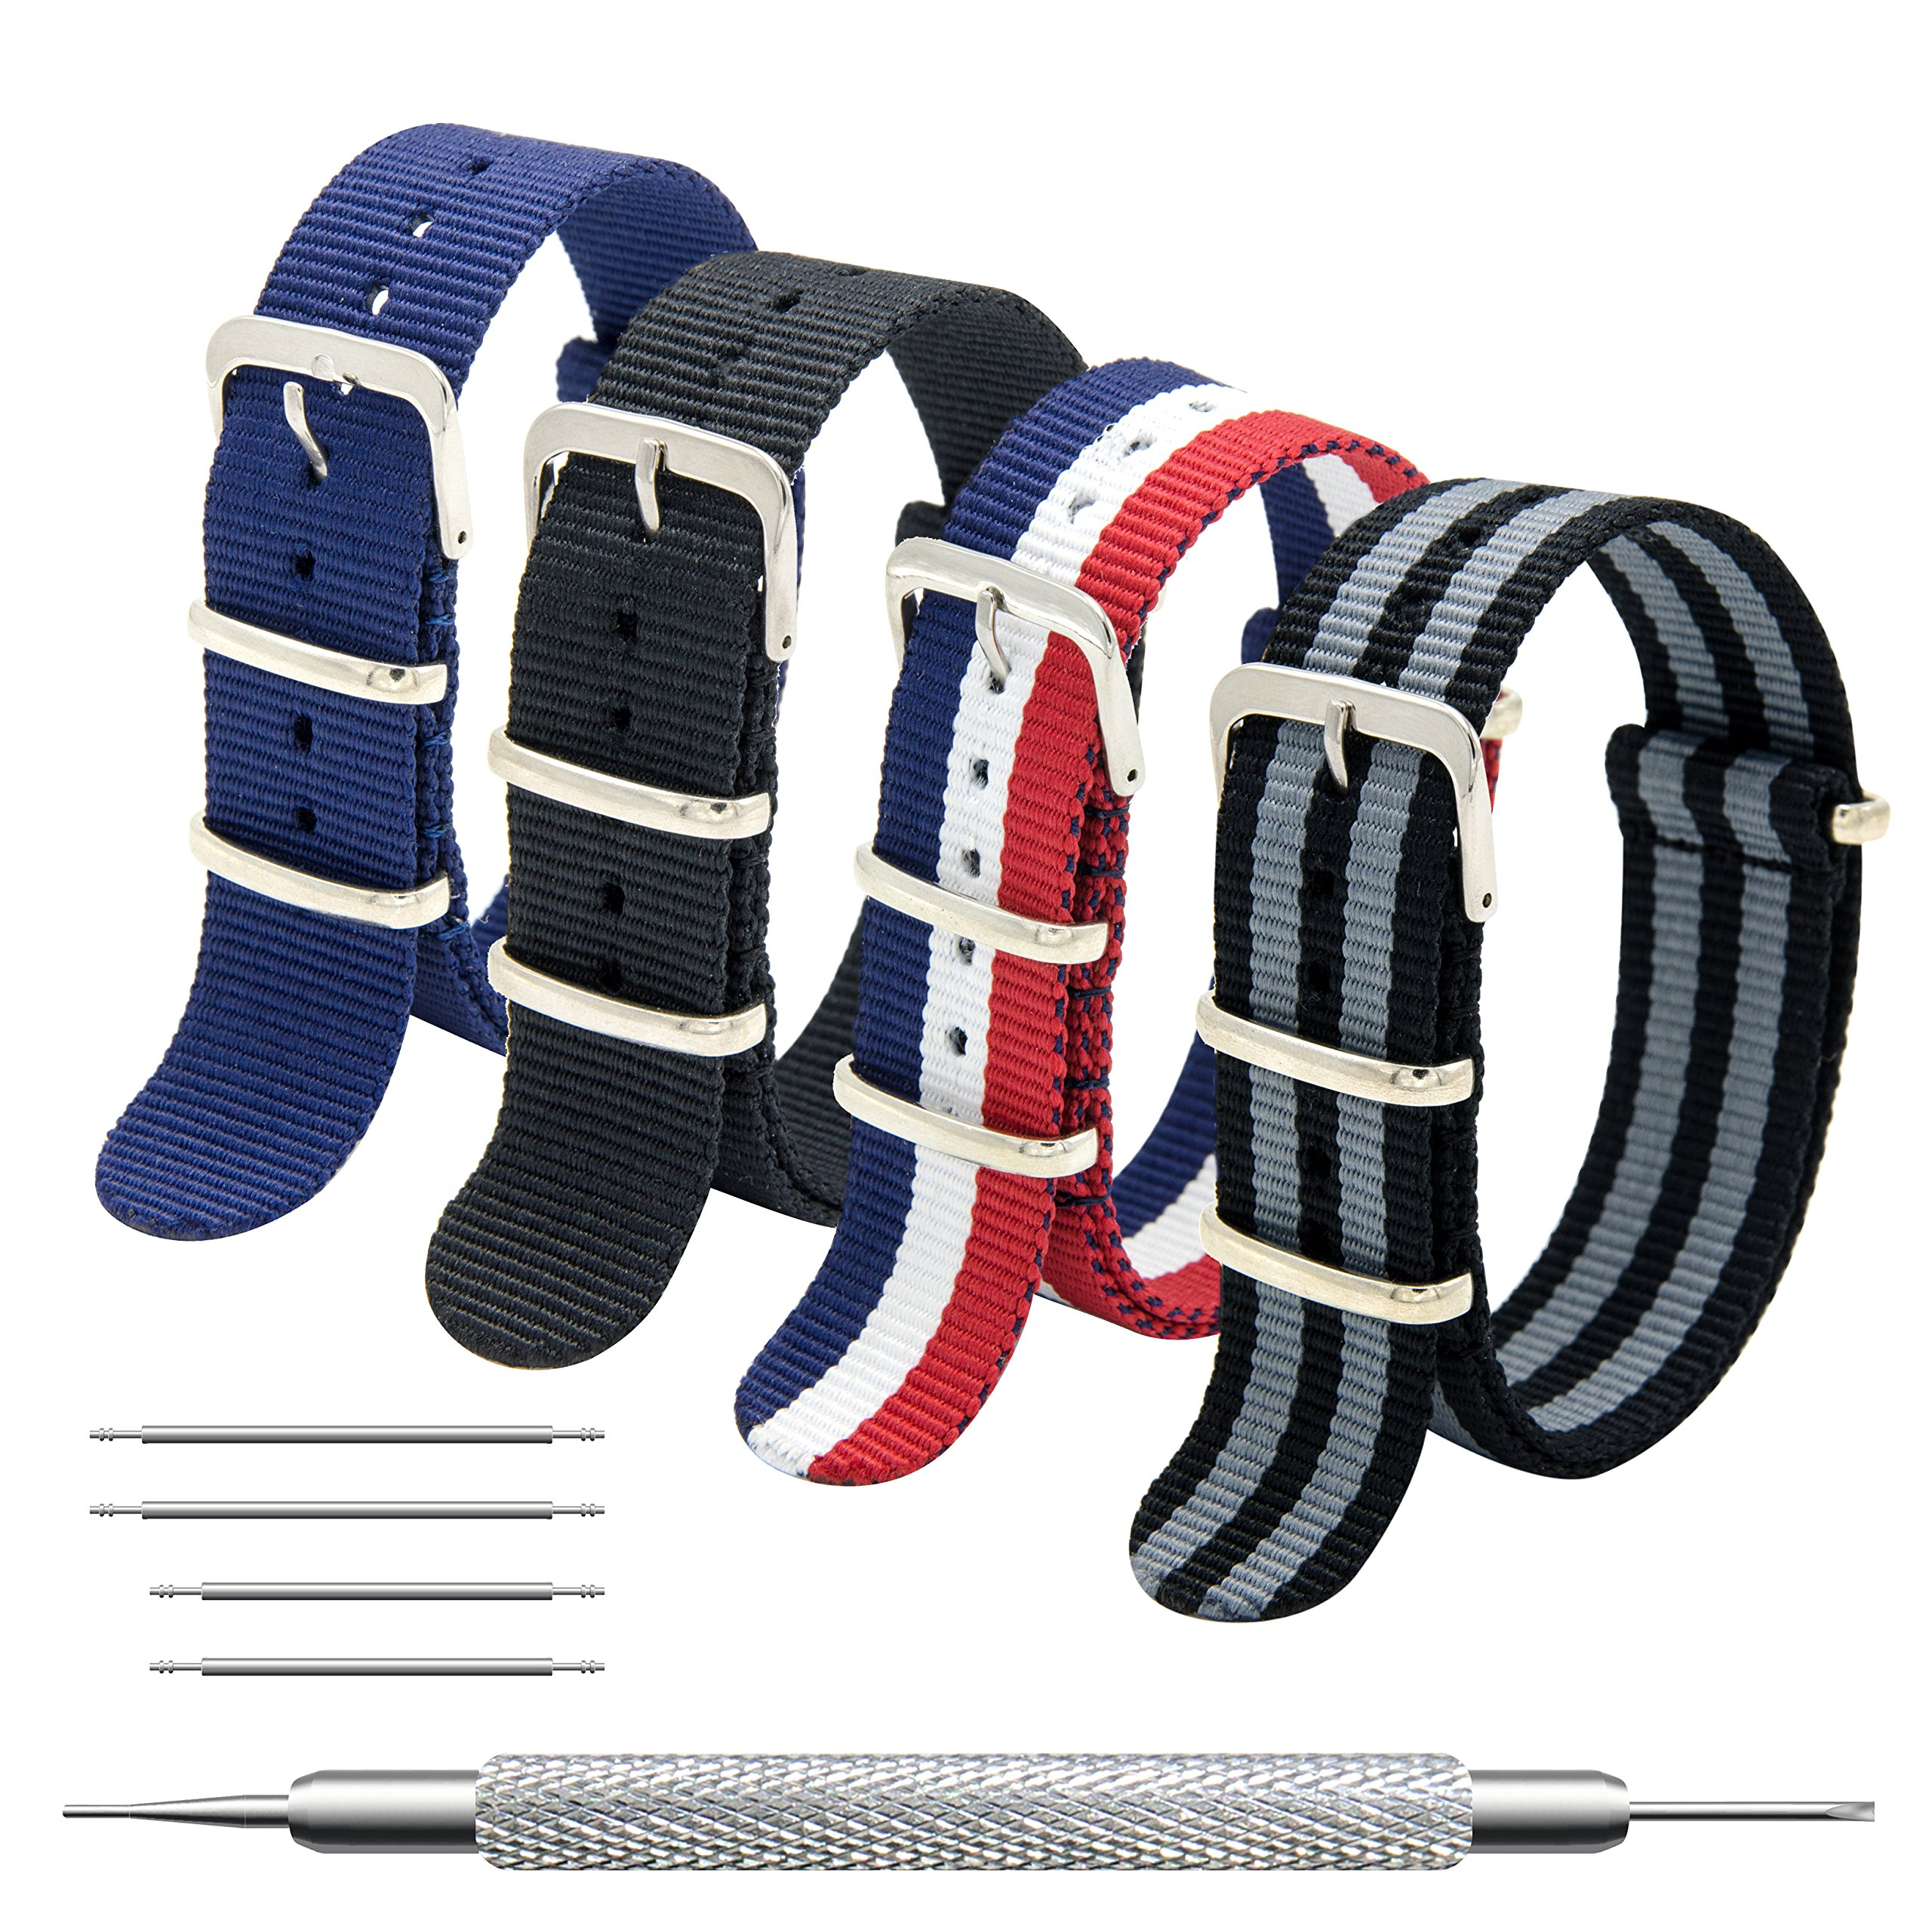 Nato Strap 4 Packs - 20mm 22mm Premium Ballistic Nylon Watch Bands Zulu Style with Stainless Steel Buckle (Black+Black Grey+ Navy Blue+ Red White Navy, 22mm)